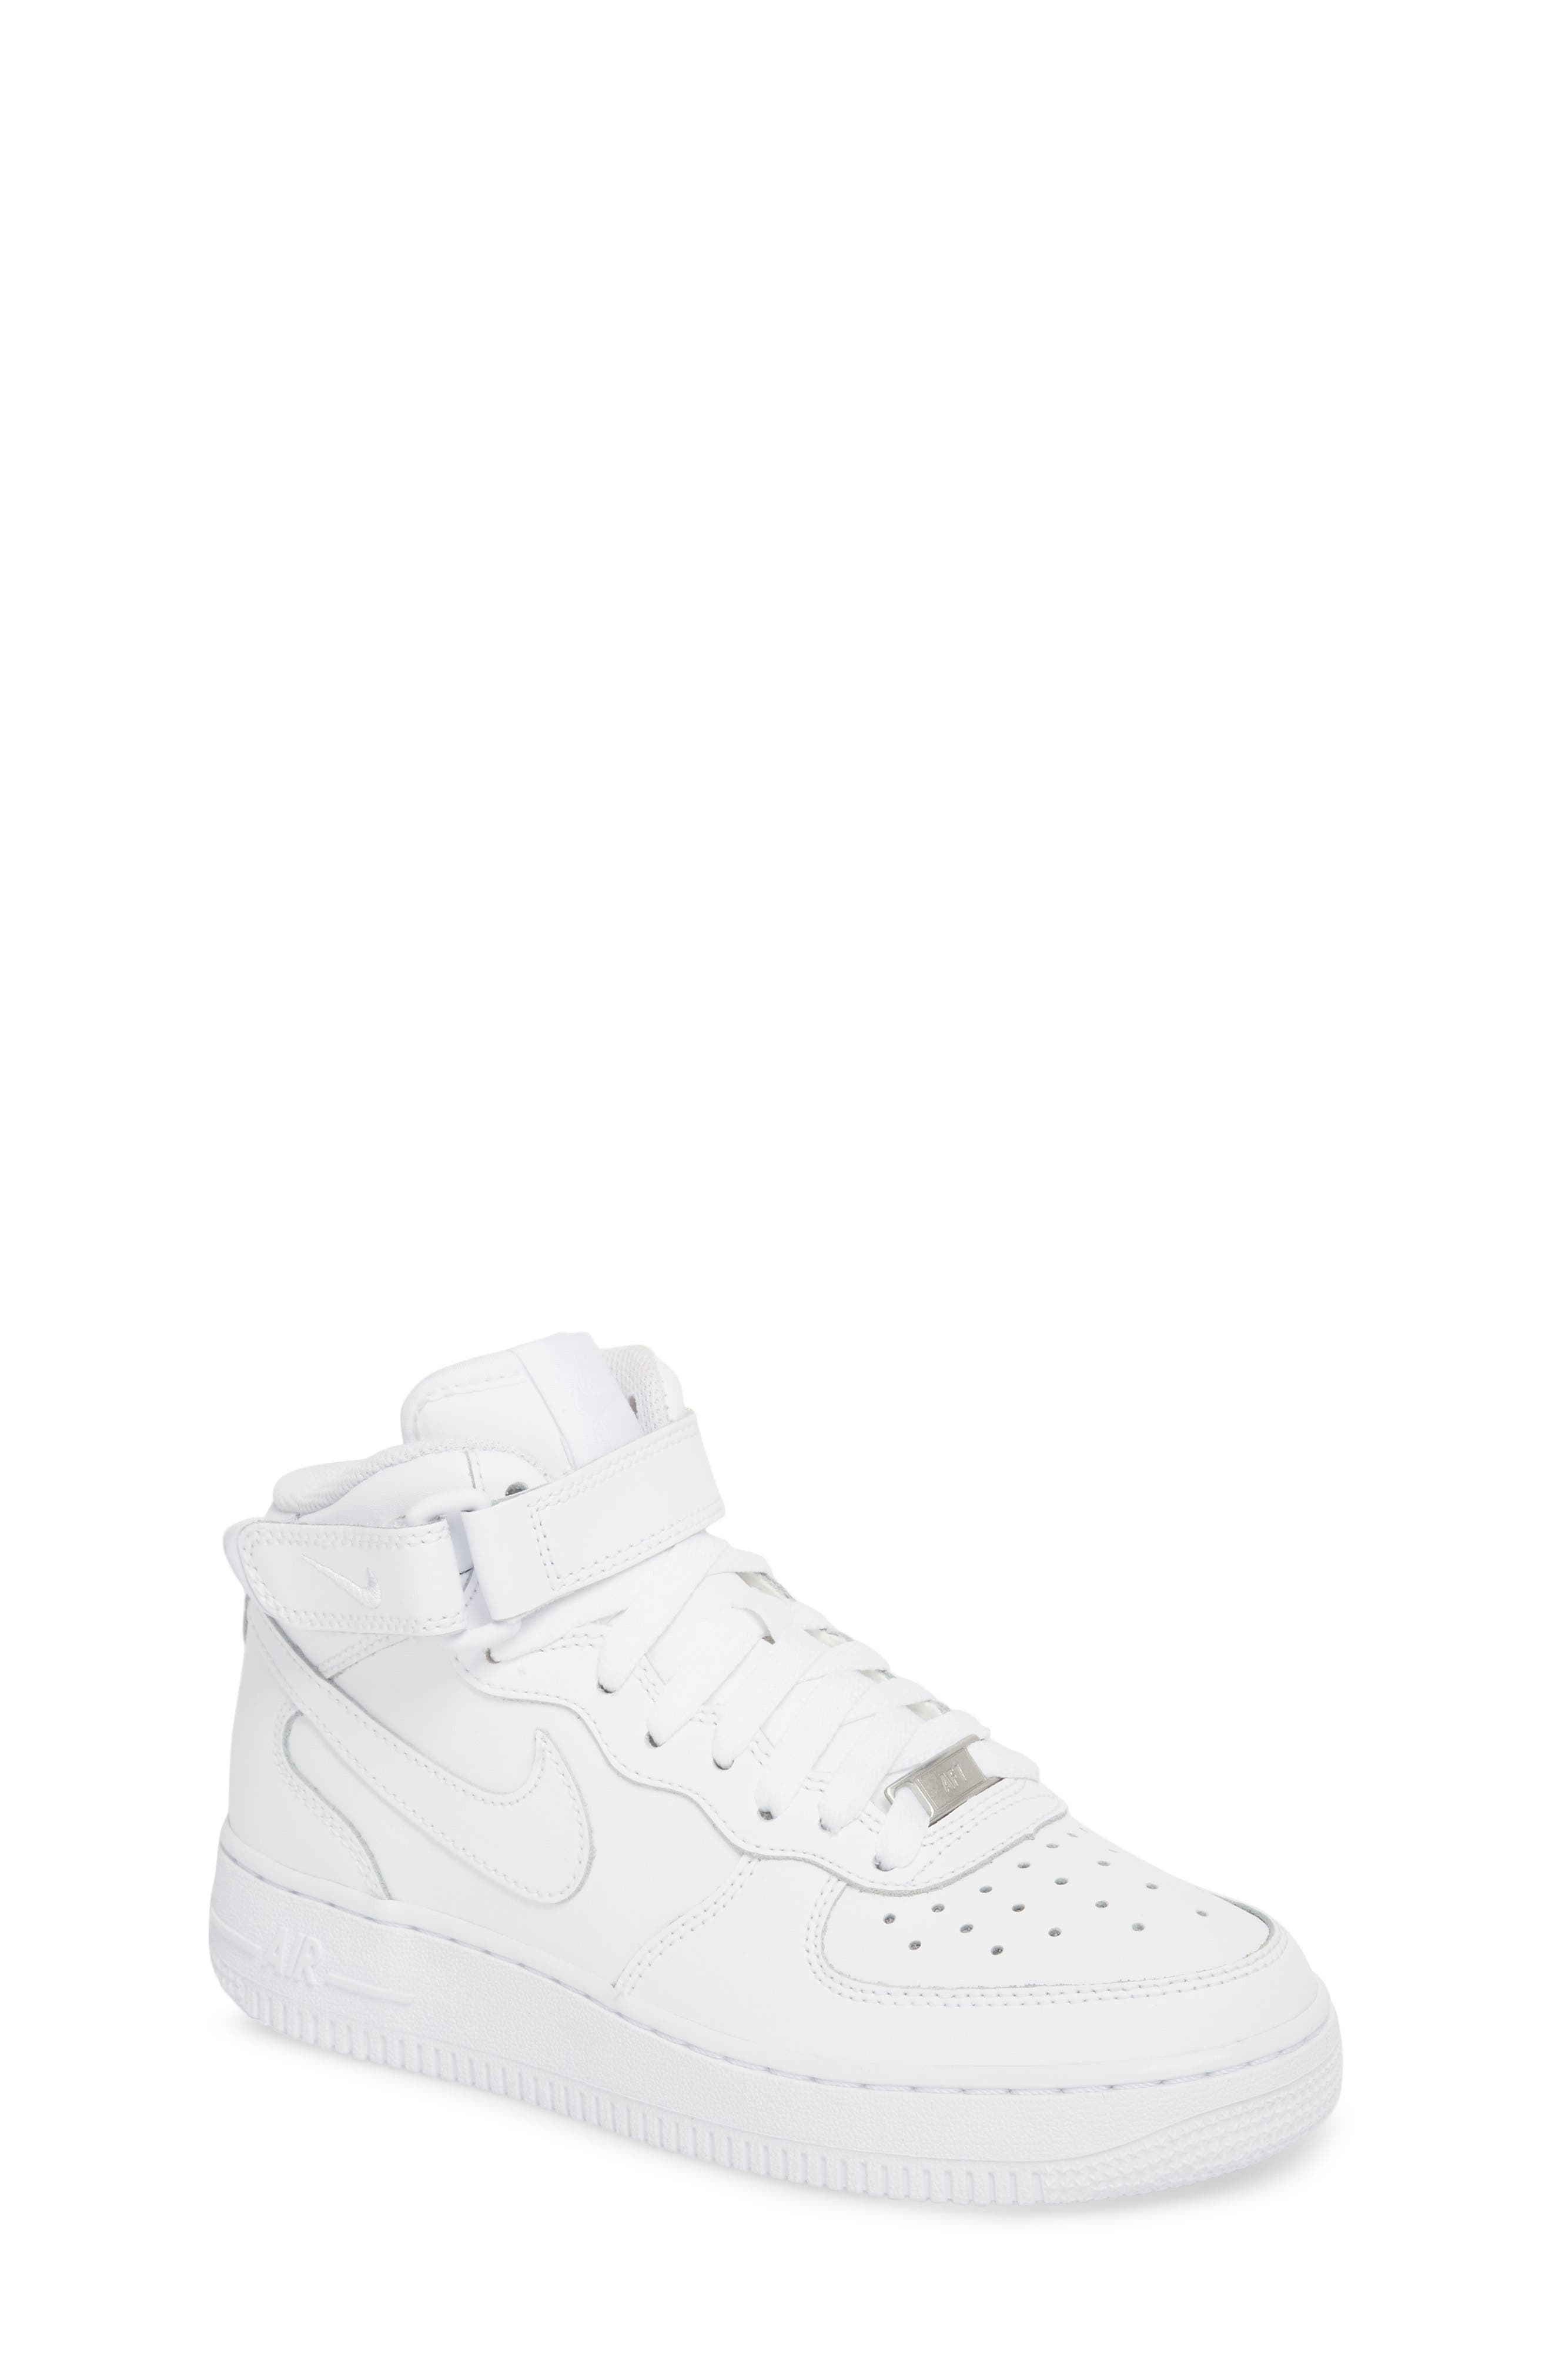 Air Force 1 Mid Top Sneaker,                         Main,                         color, WHITE